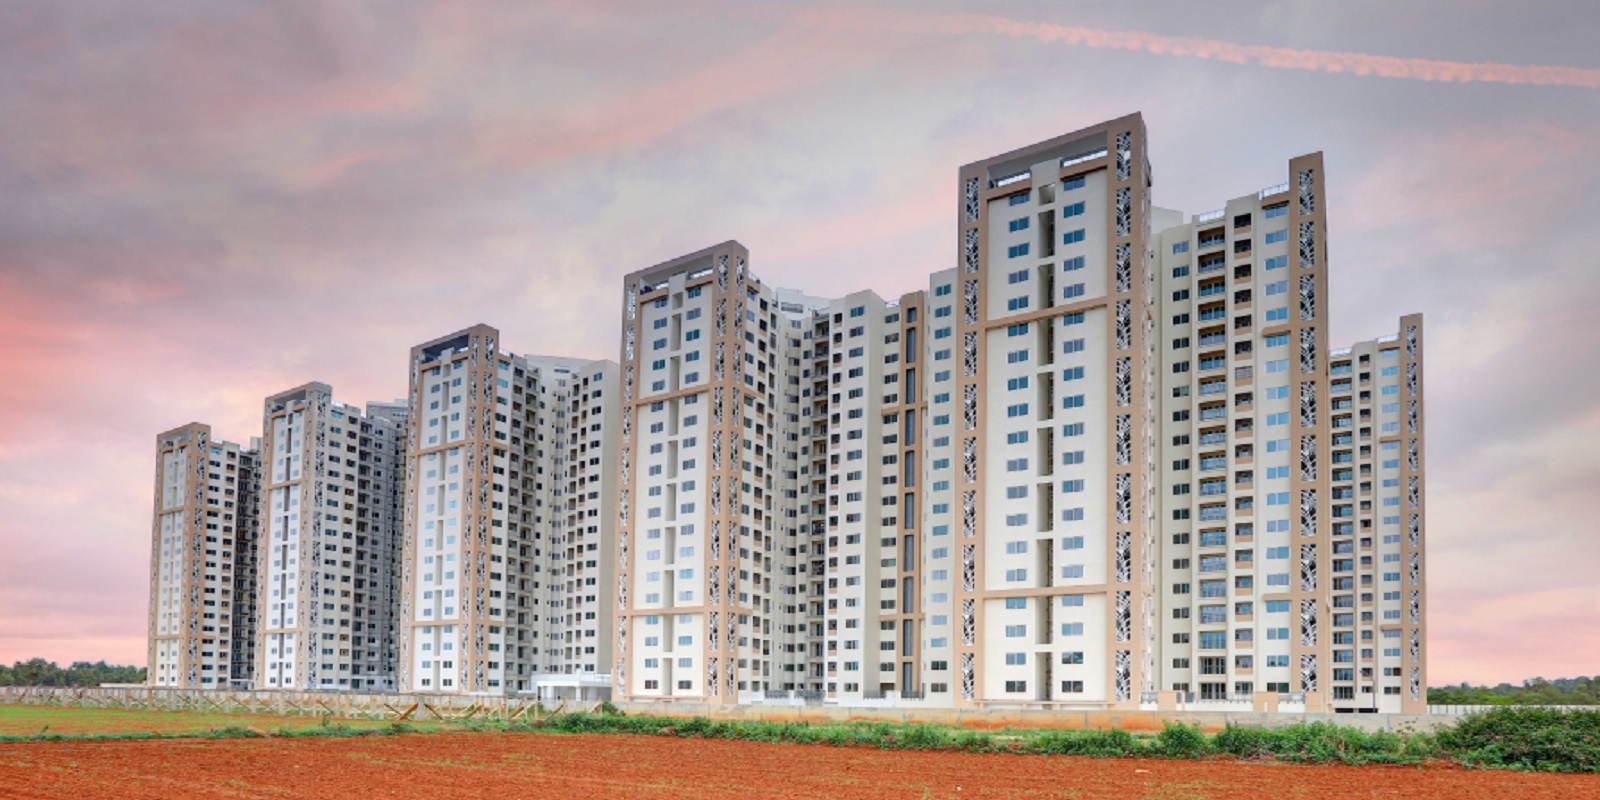 shriram greenfield project large image2